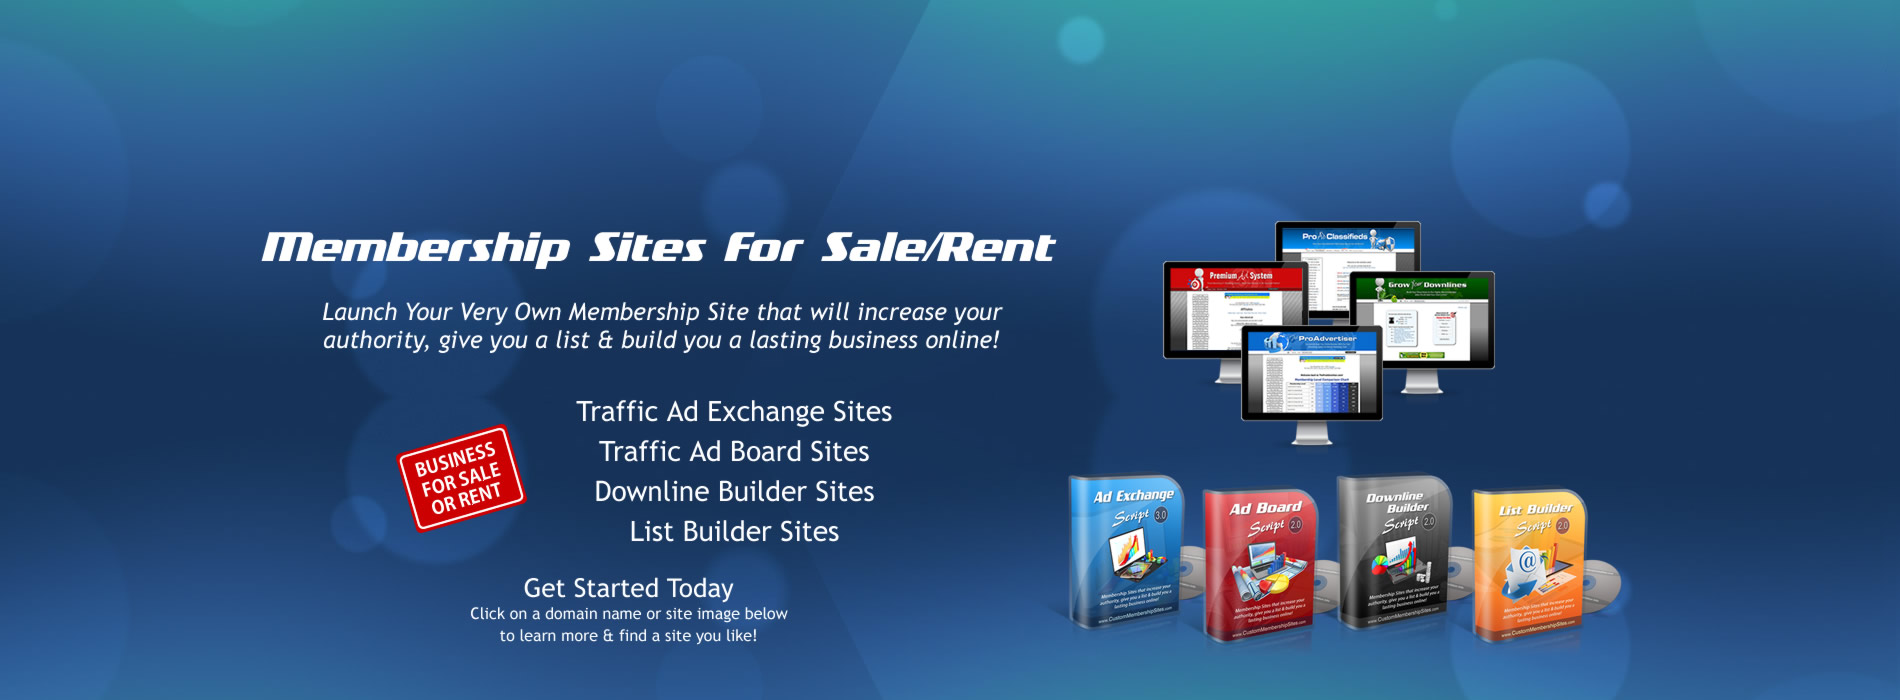 Membership Sites For Sale